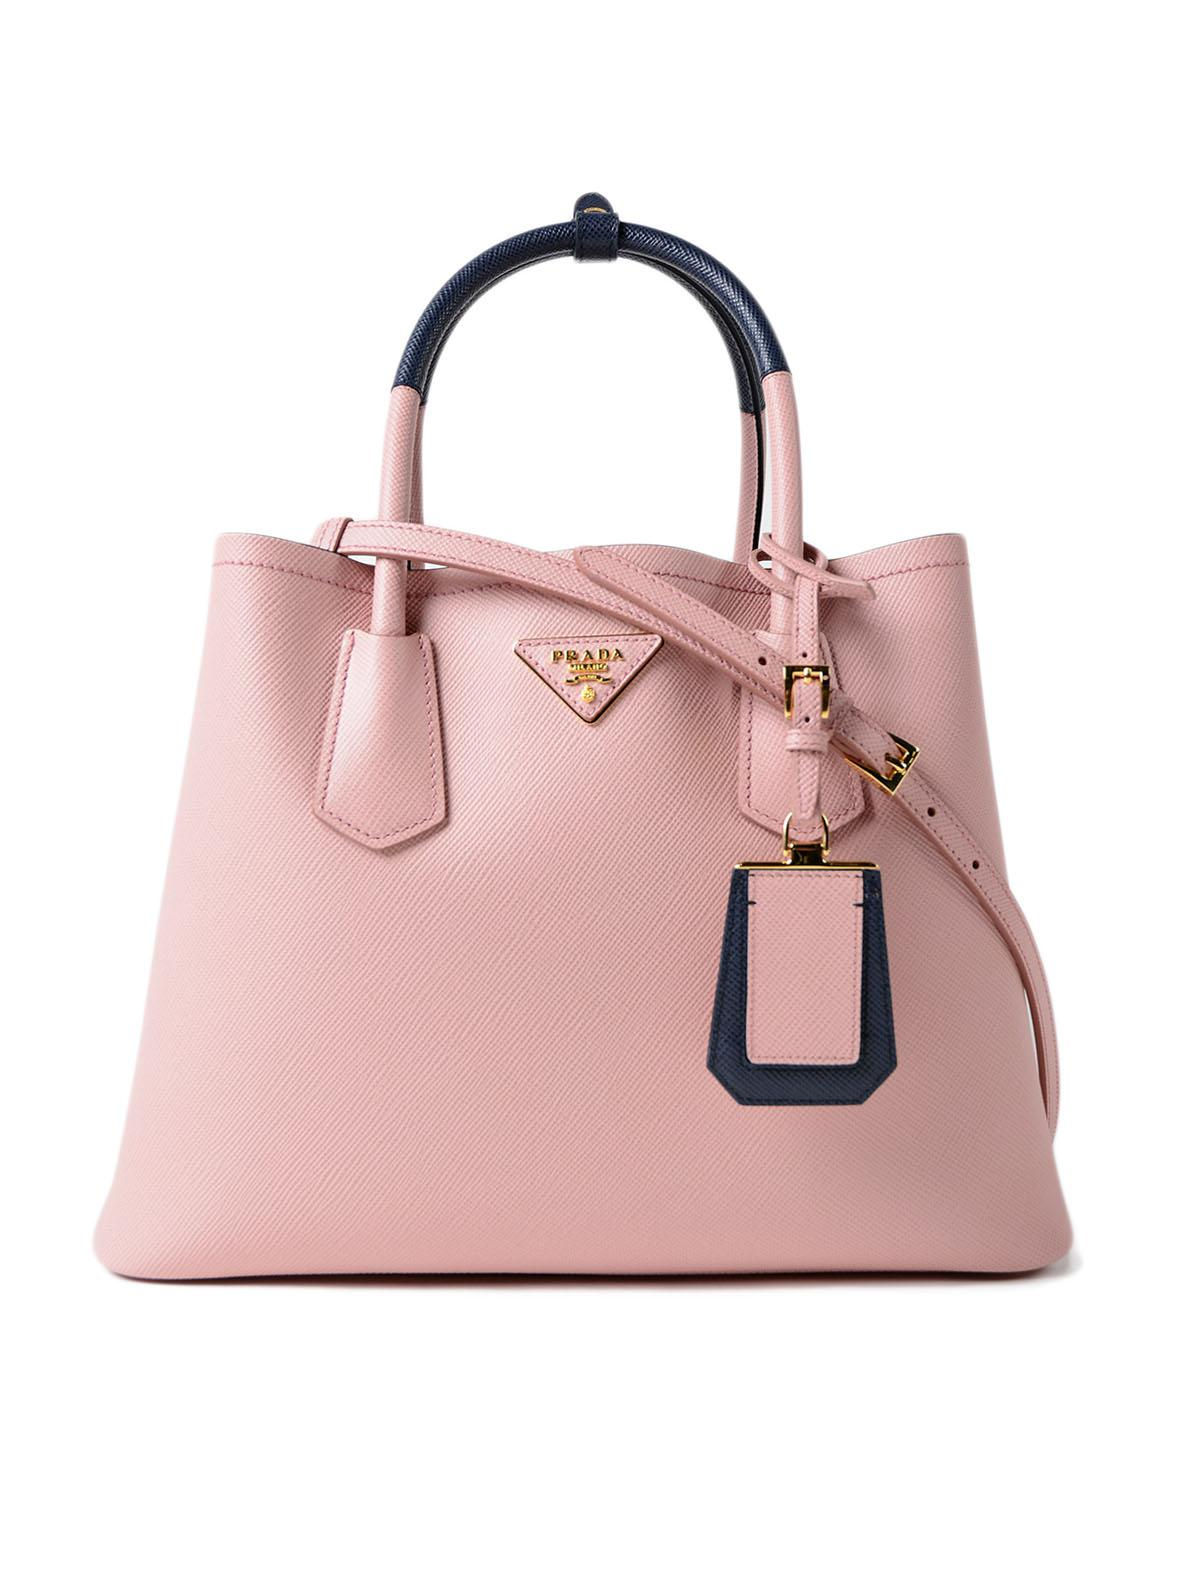 6074149993 Lyst - Prada Saffiano Cuir Double Bag in Pink